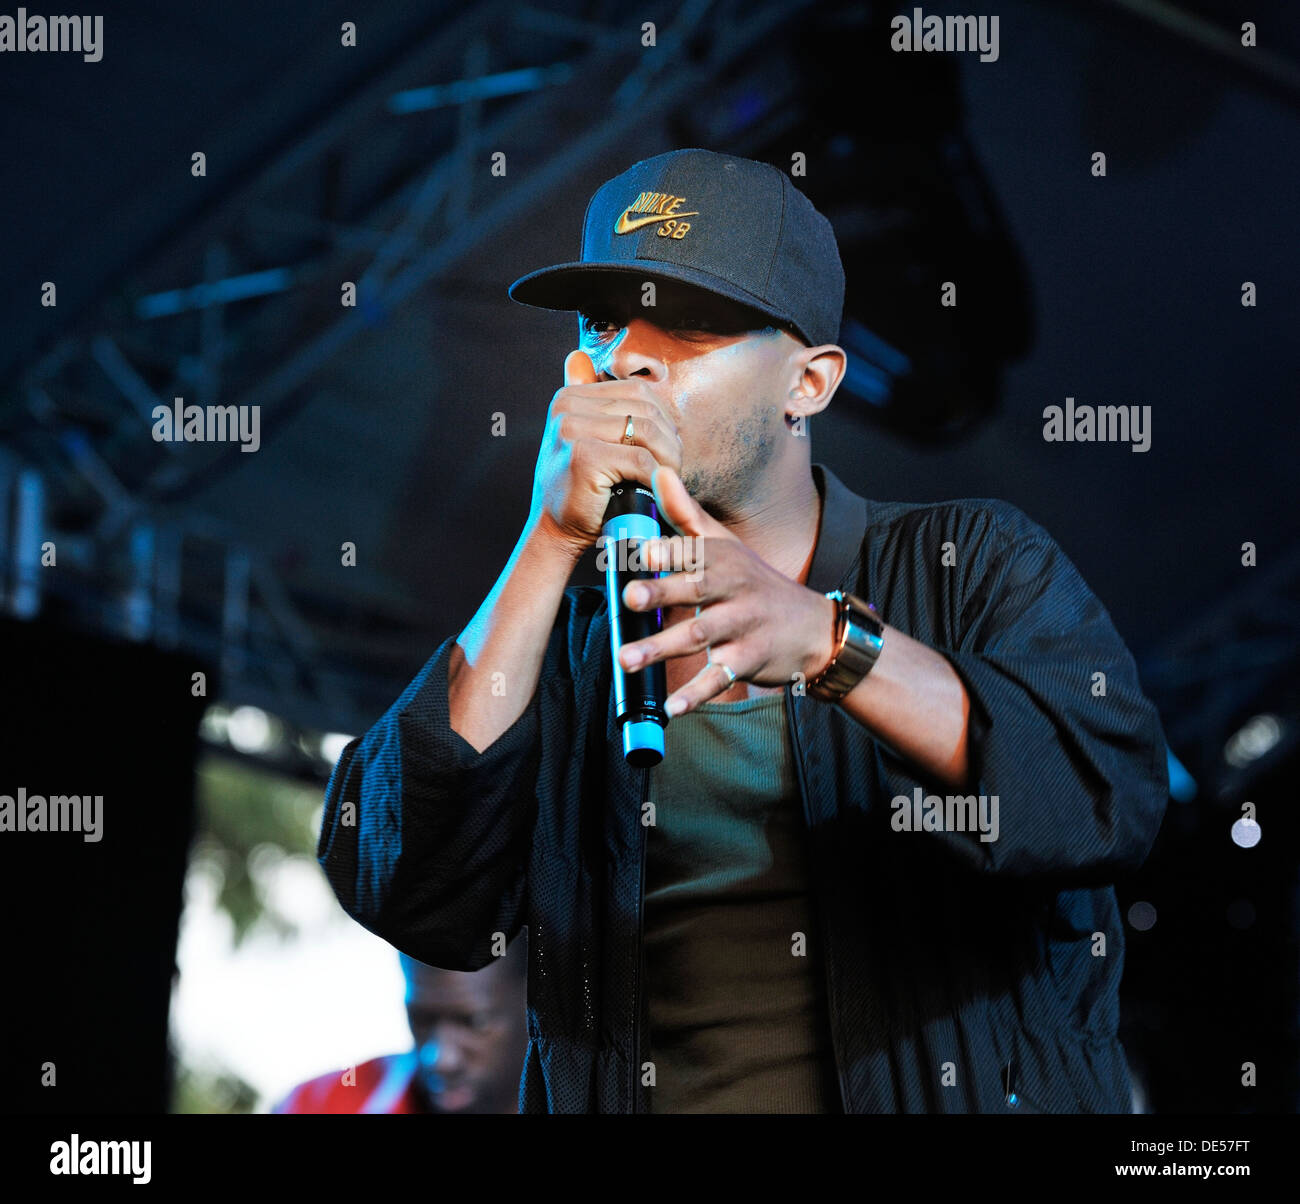 US Hip Hop artist Wordsworth MC performing on stage at the The ...